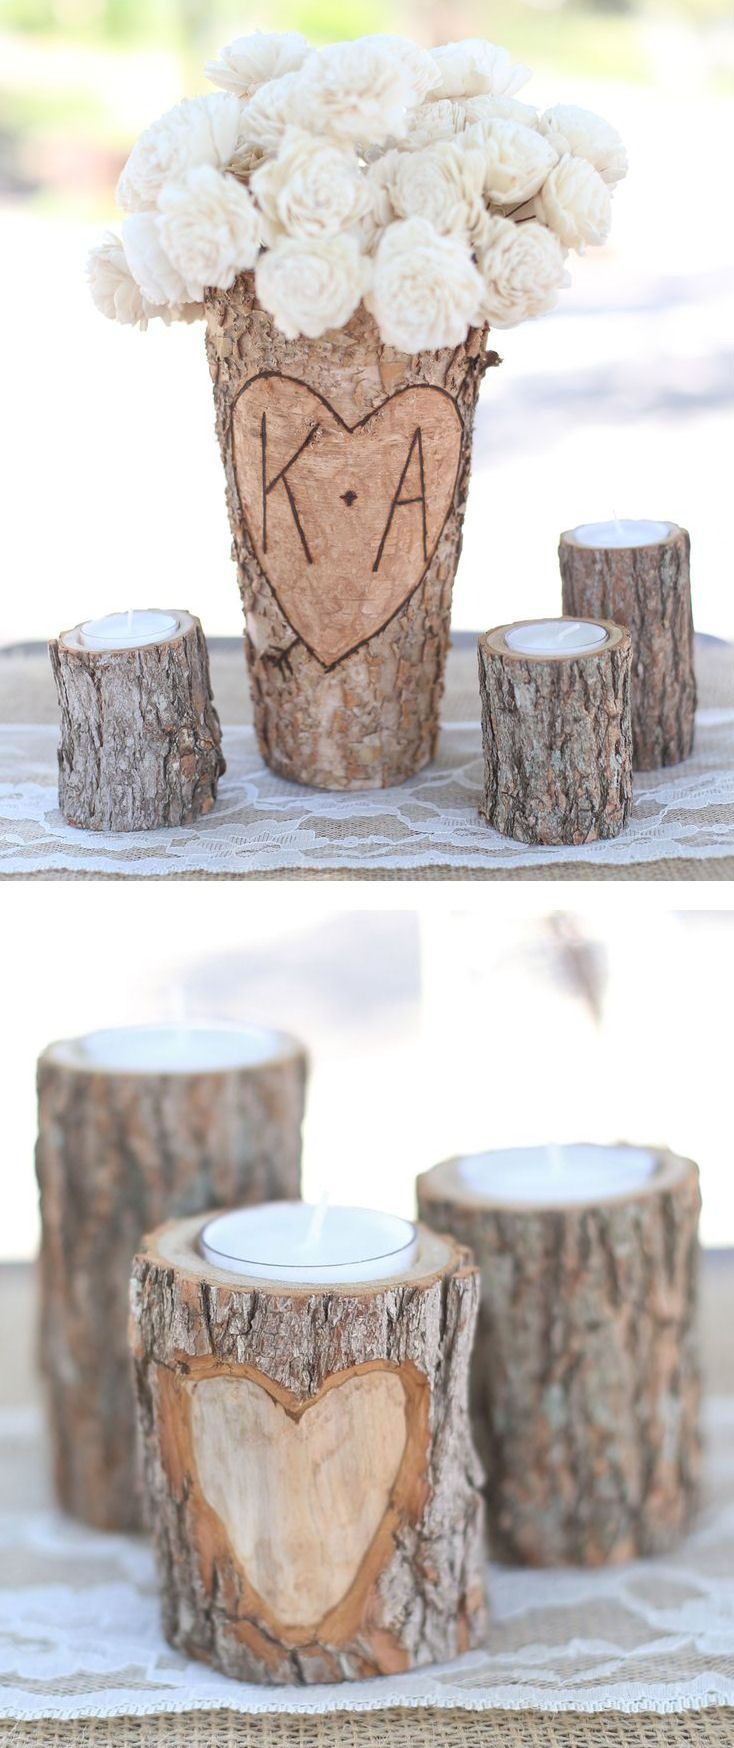 Birch bark candles vase great wedding centerpiece